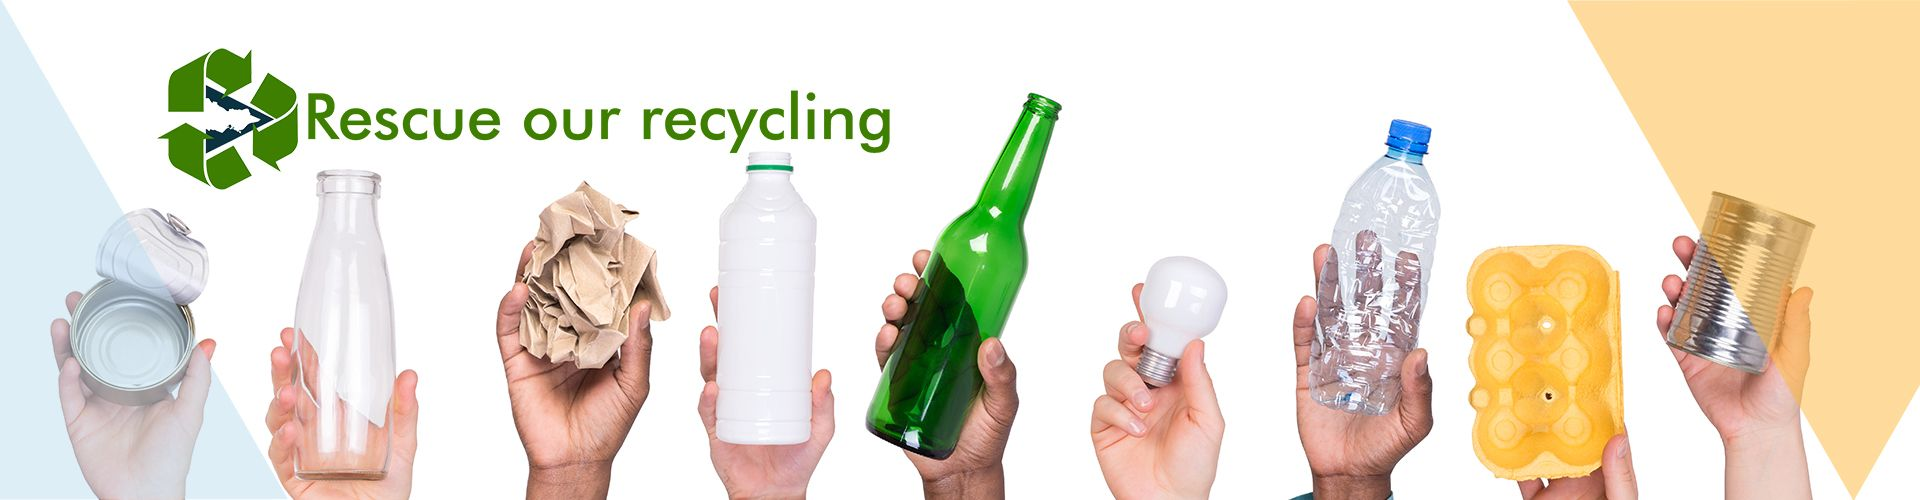 """MAV welcomes release of """"Recycling Victoria"""" Image"""